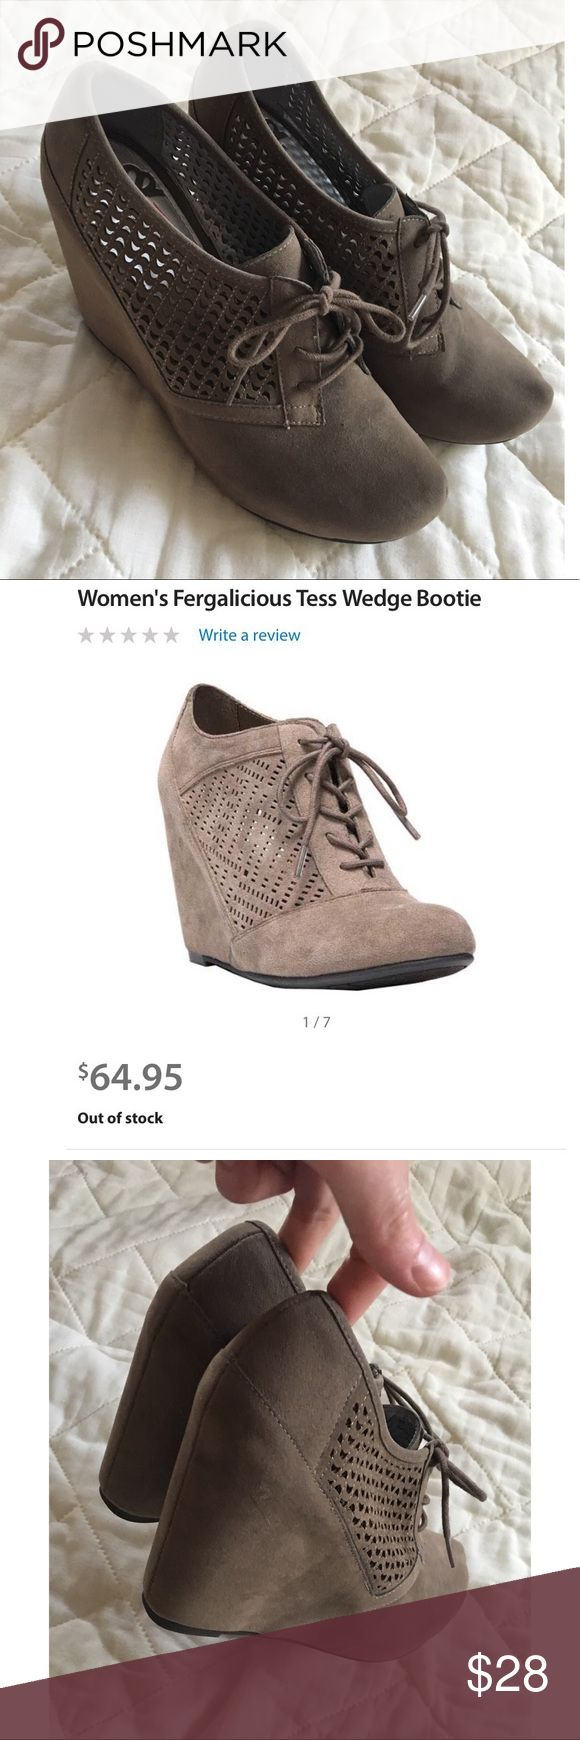 Taupe Wedge Booties Fergie Perforated Wedge Booties. EUC. There is a small mark on the inside R shoe. Not visible when wearing. 7.5 but would also fit an 8. Taupe (Beige/Greyish). Heel height: 3.5in. Make me offer!! Reasonable Offers will be accepted!  Fergalicious Shoes Ankle Boots & Booties